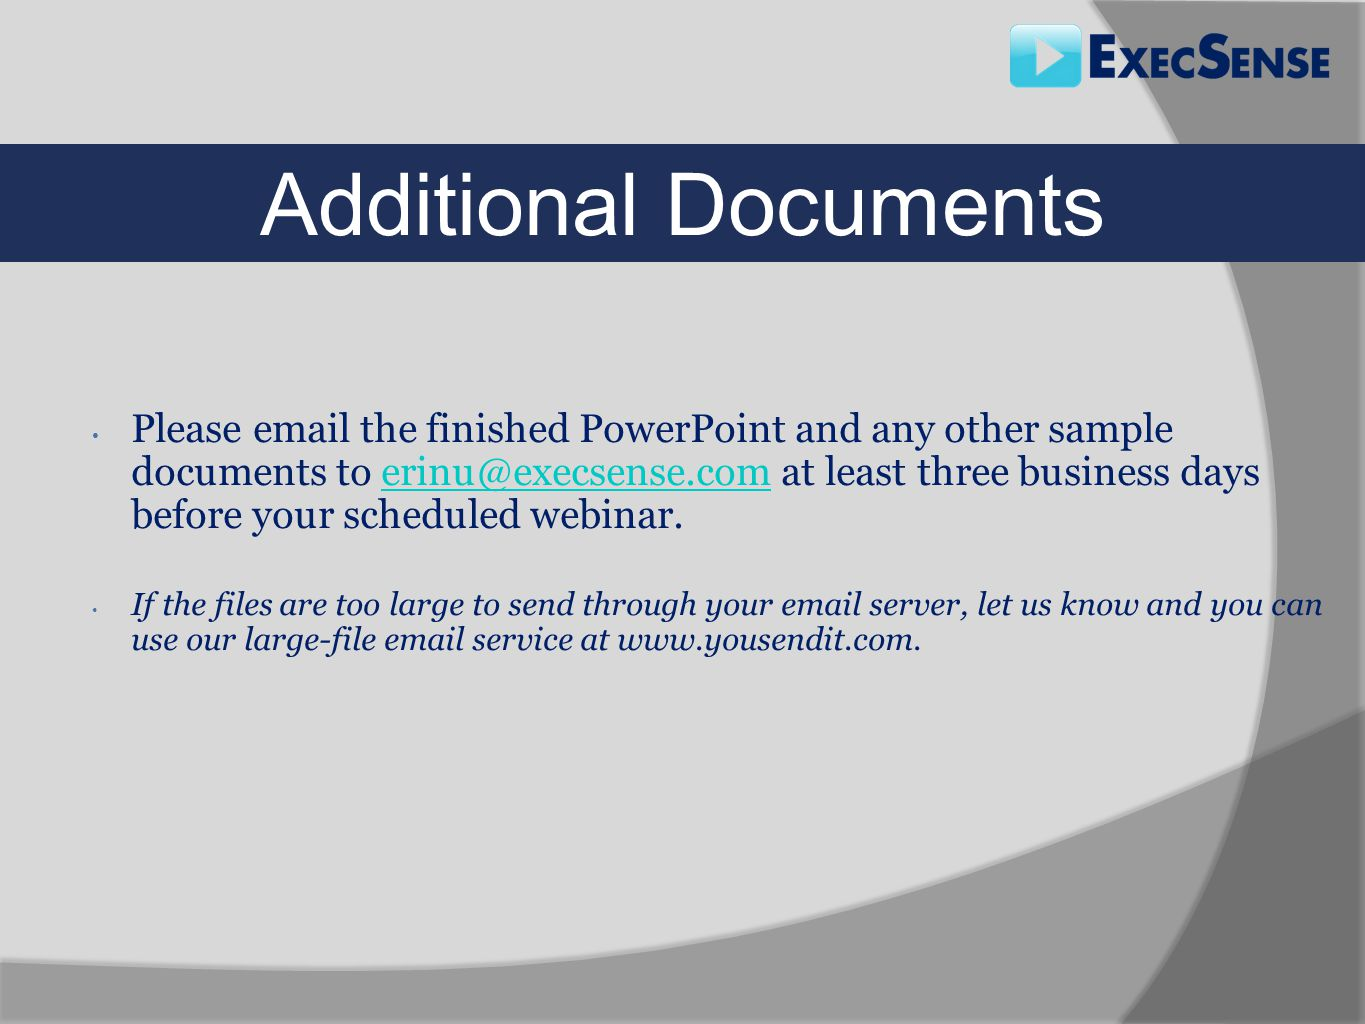 Please email the finished PowerPoint and any other sample documents to erinu@execsense.com at least three business days before your scheduled webinar.